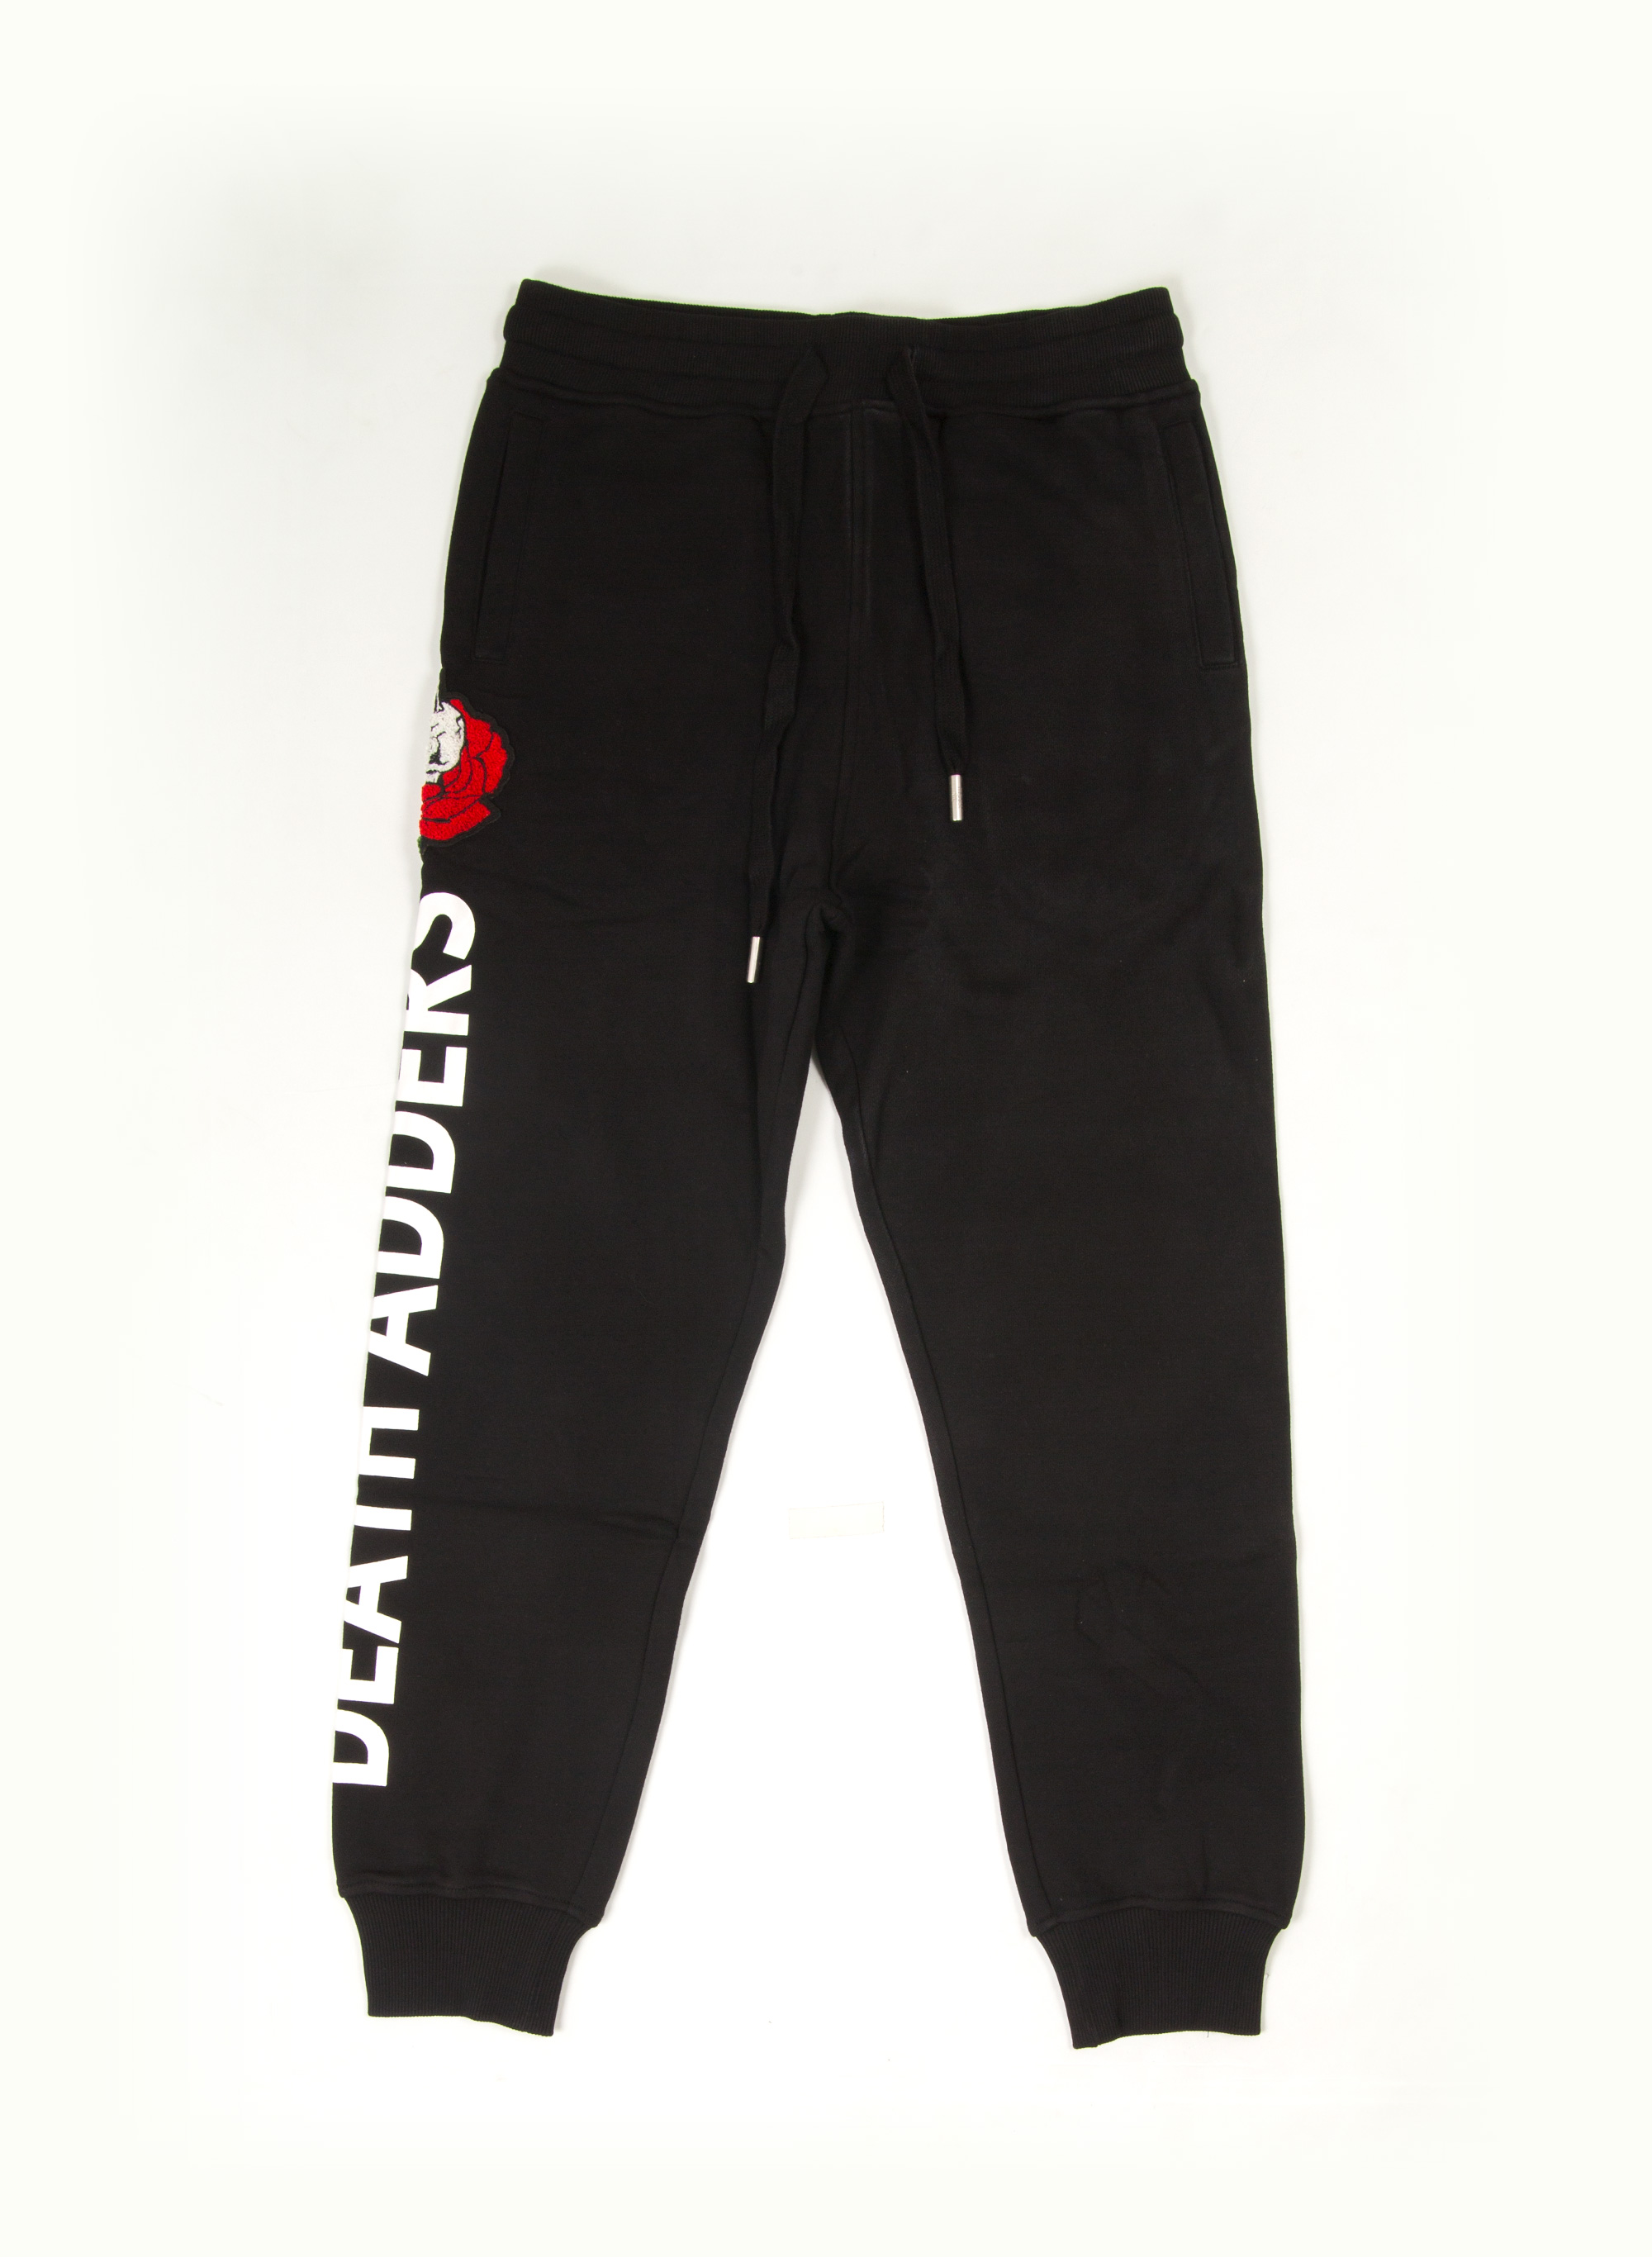 Fragrant Women's Sweatpants